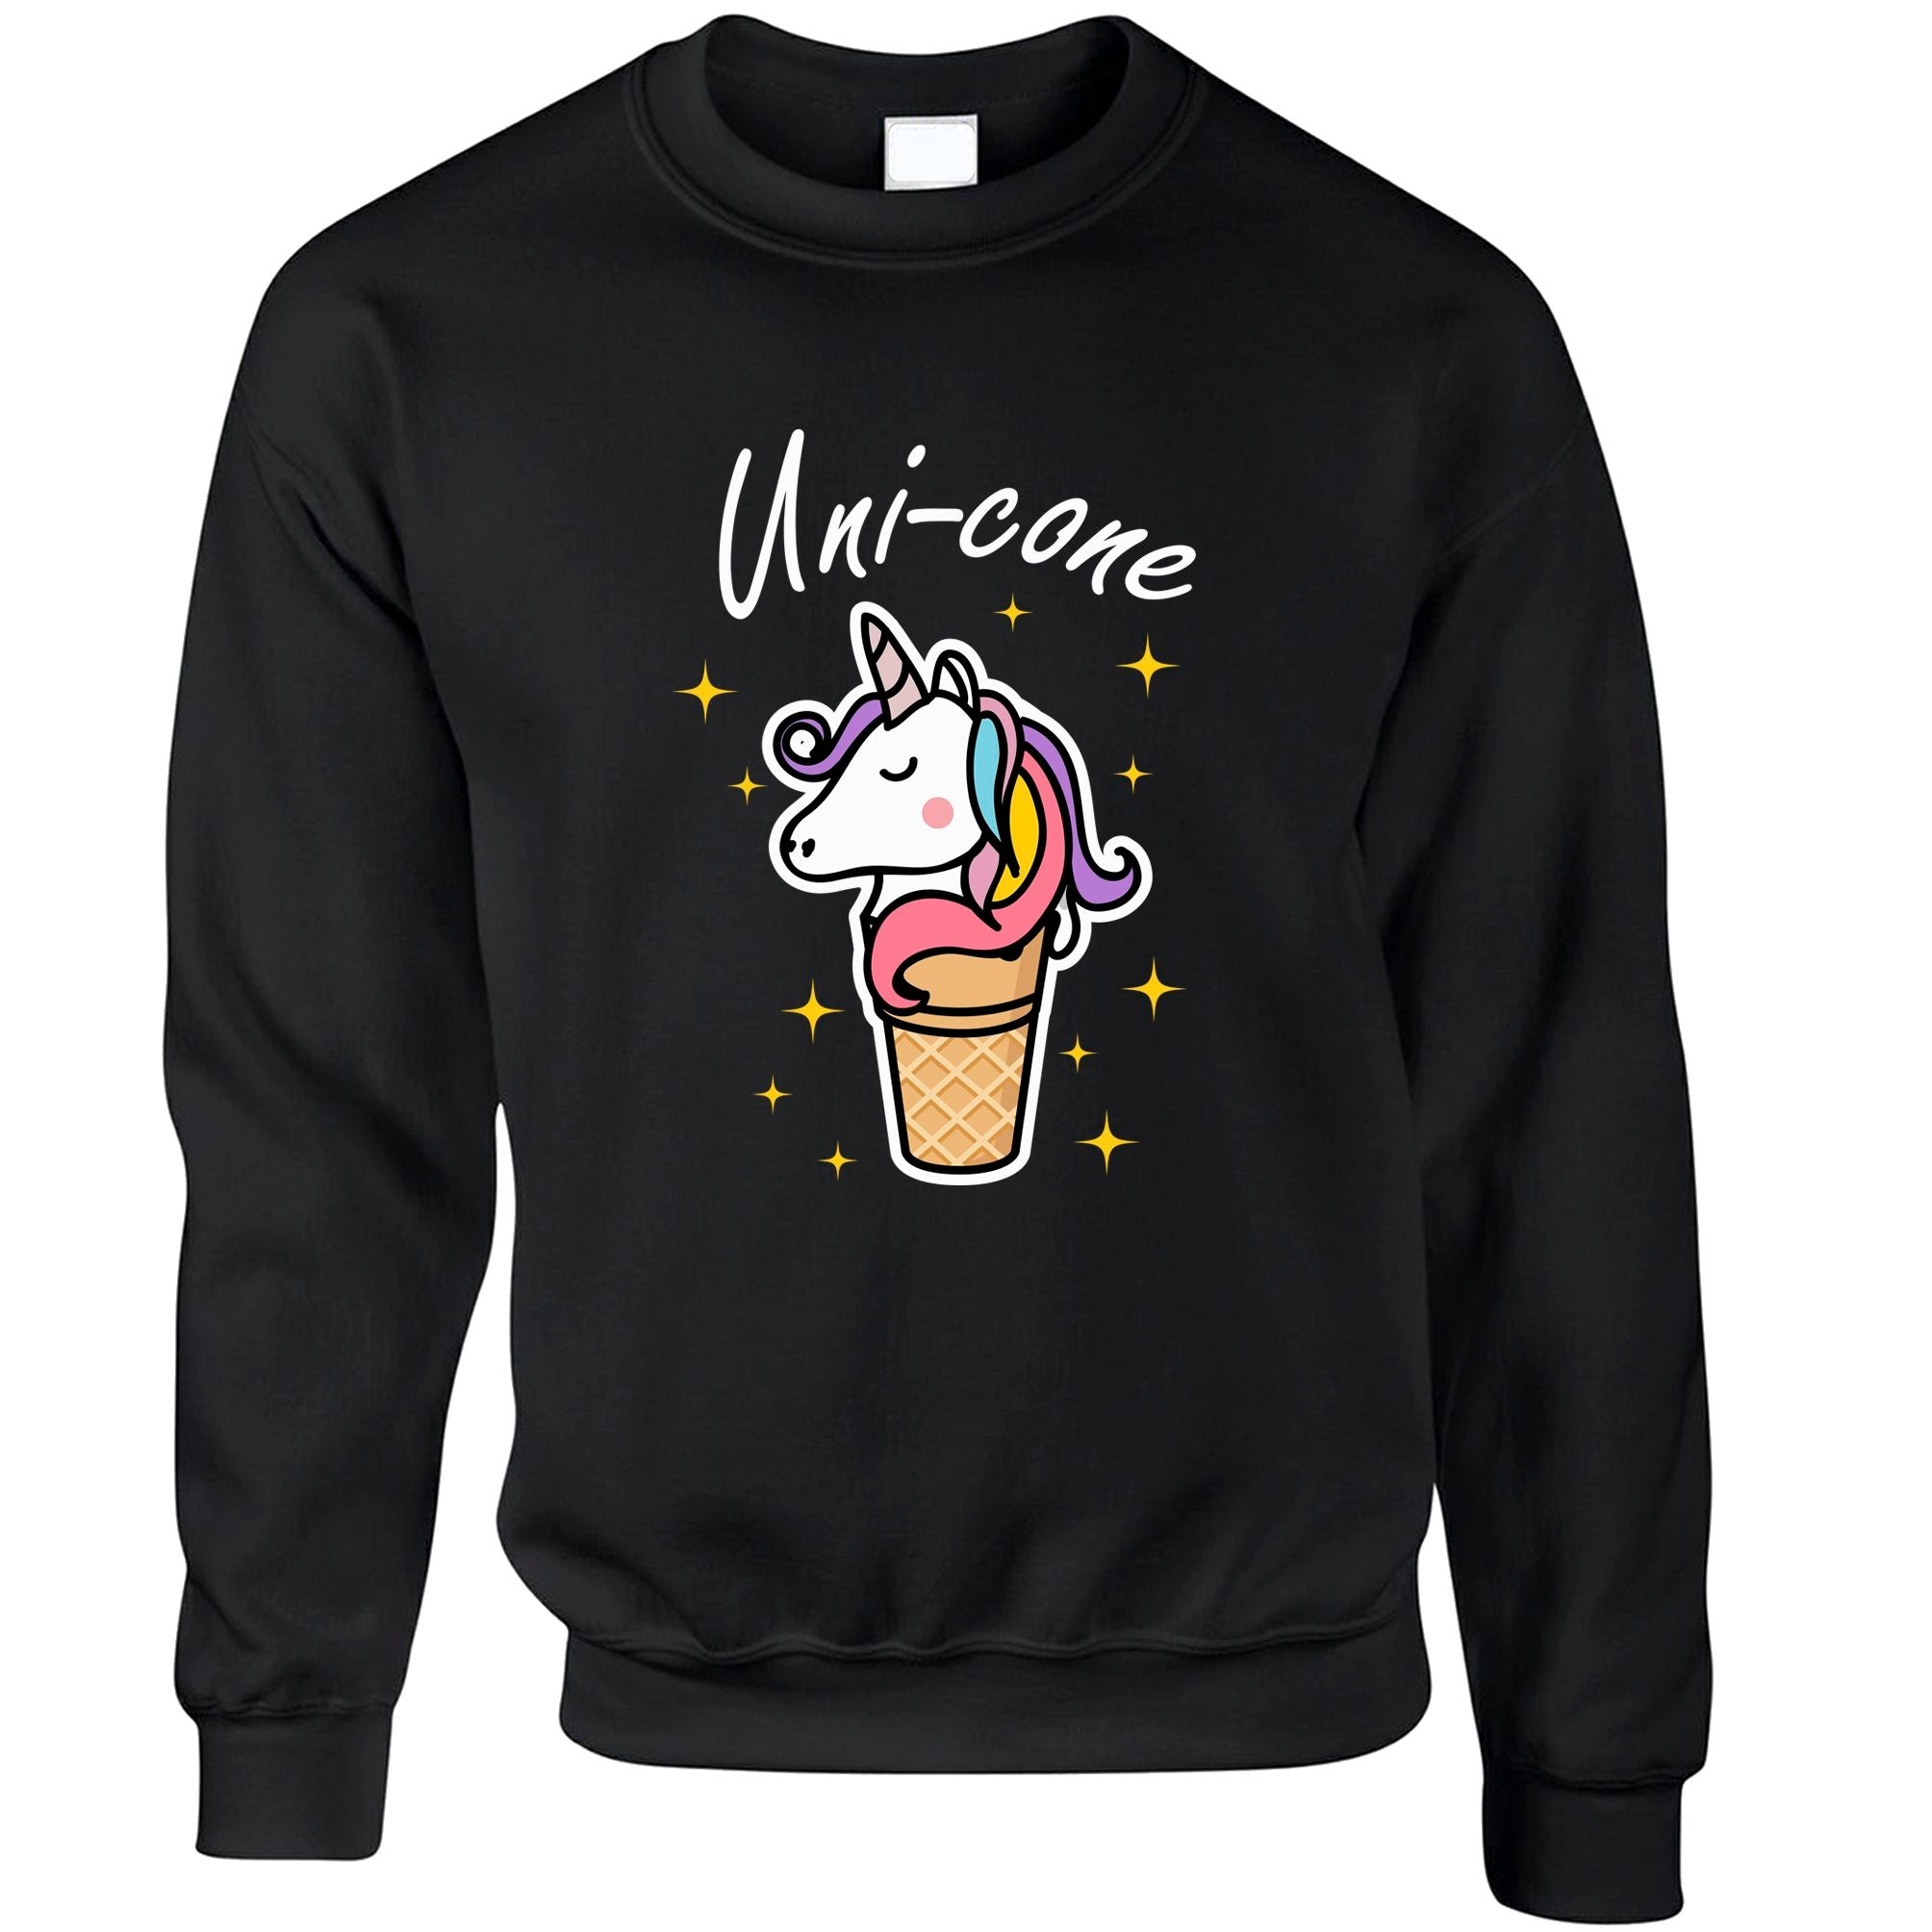 Fantasy Joke Jumper Uni-Cone Ice Cream Unicorn Pun Sweatshirt Sweater